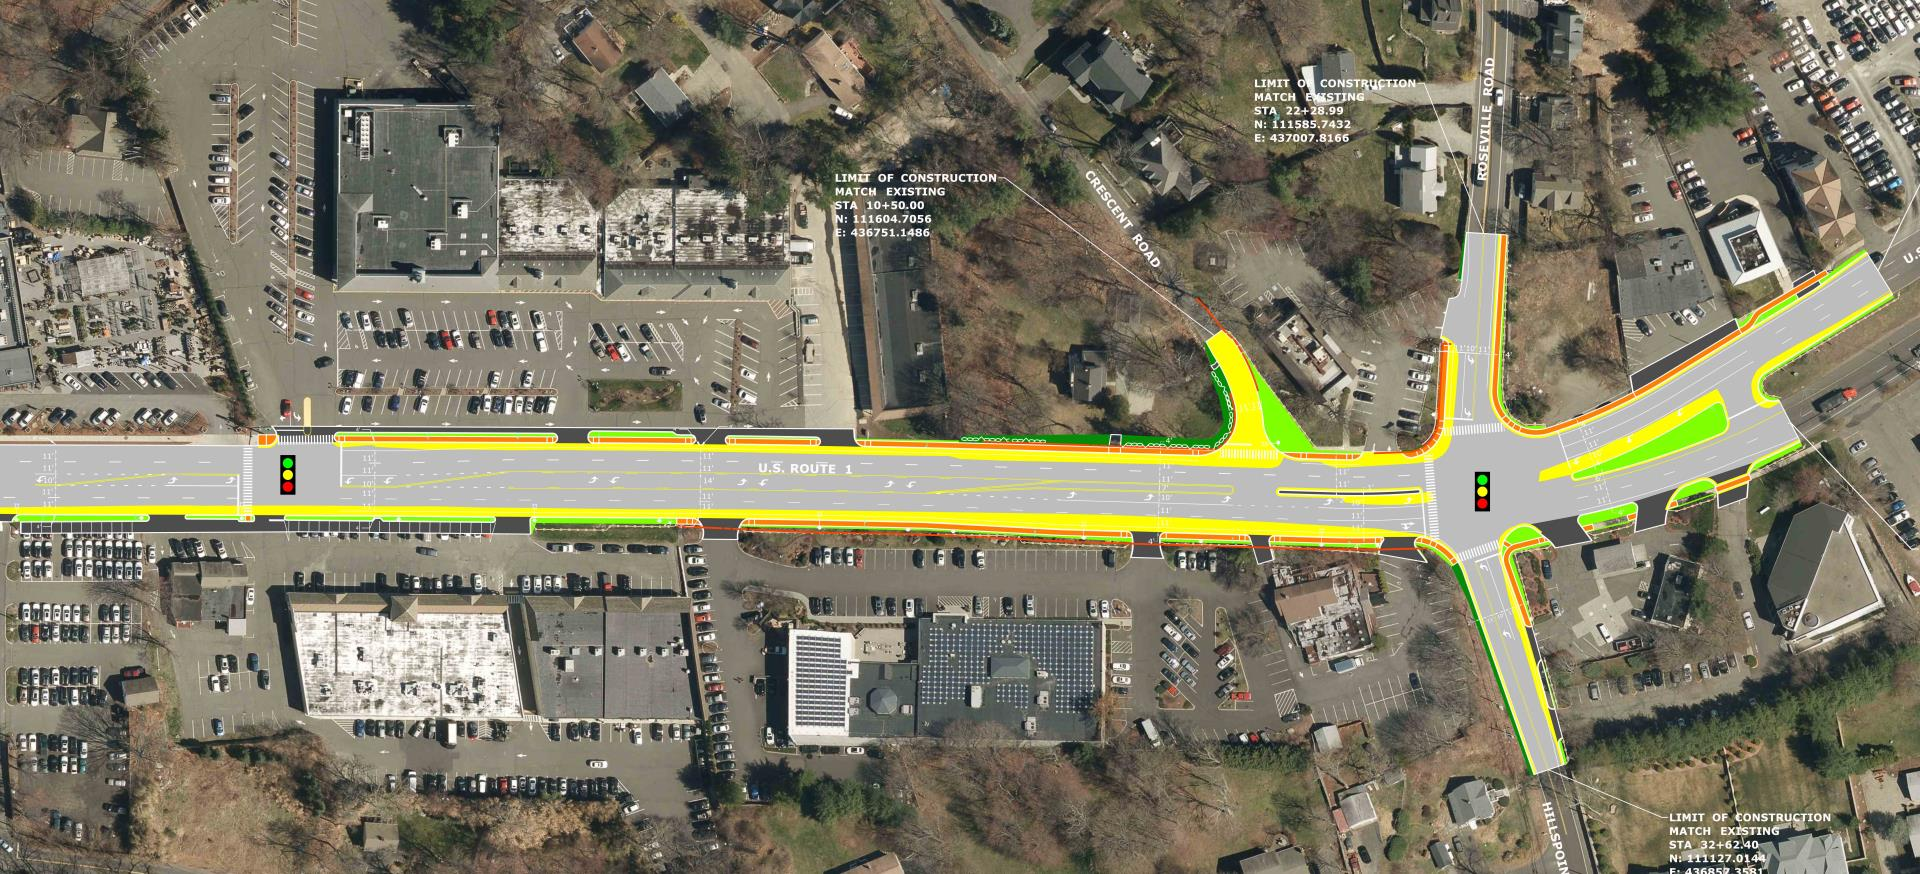 State Project No. 158-215; Intersection Improvements, US 1, Town of Westport